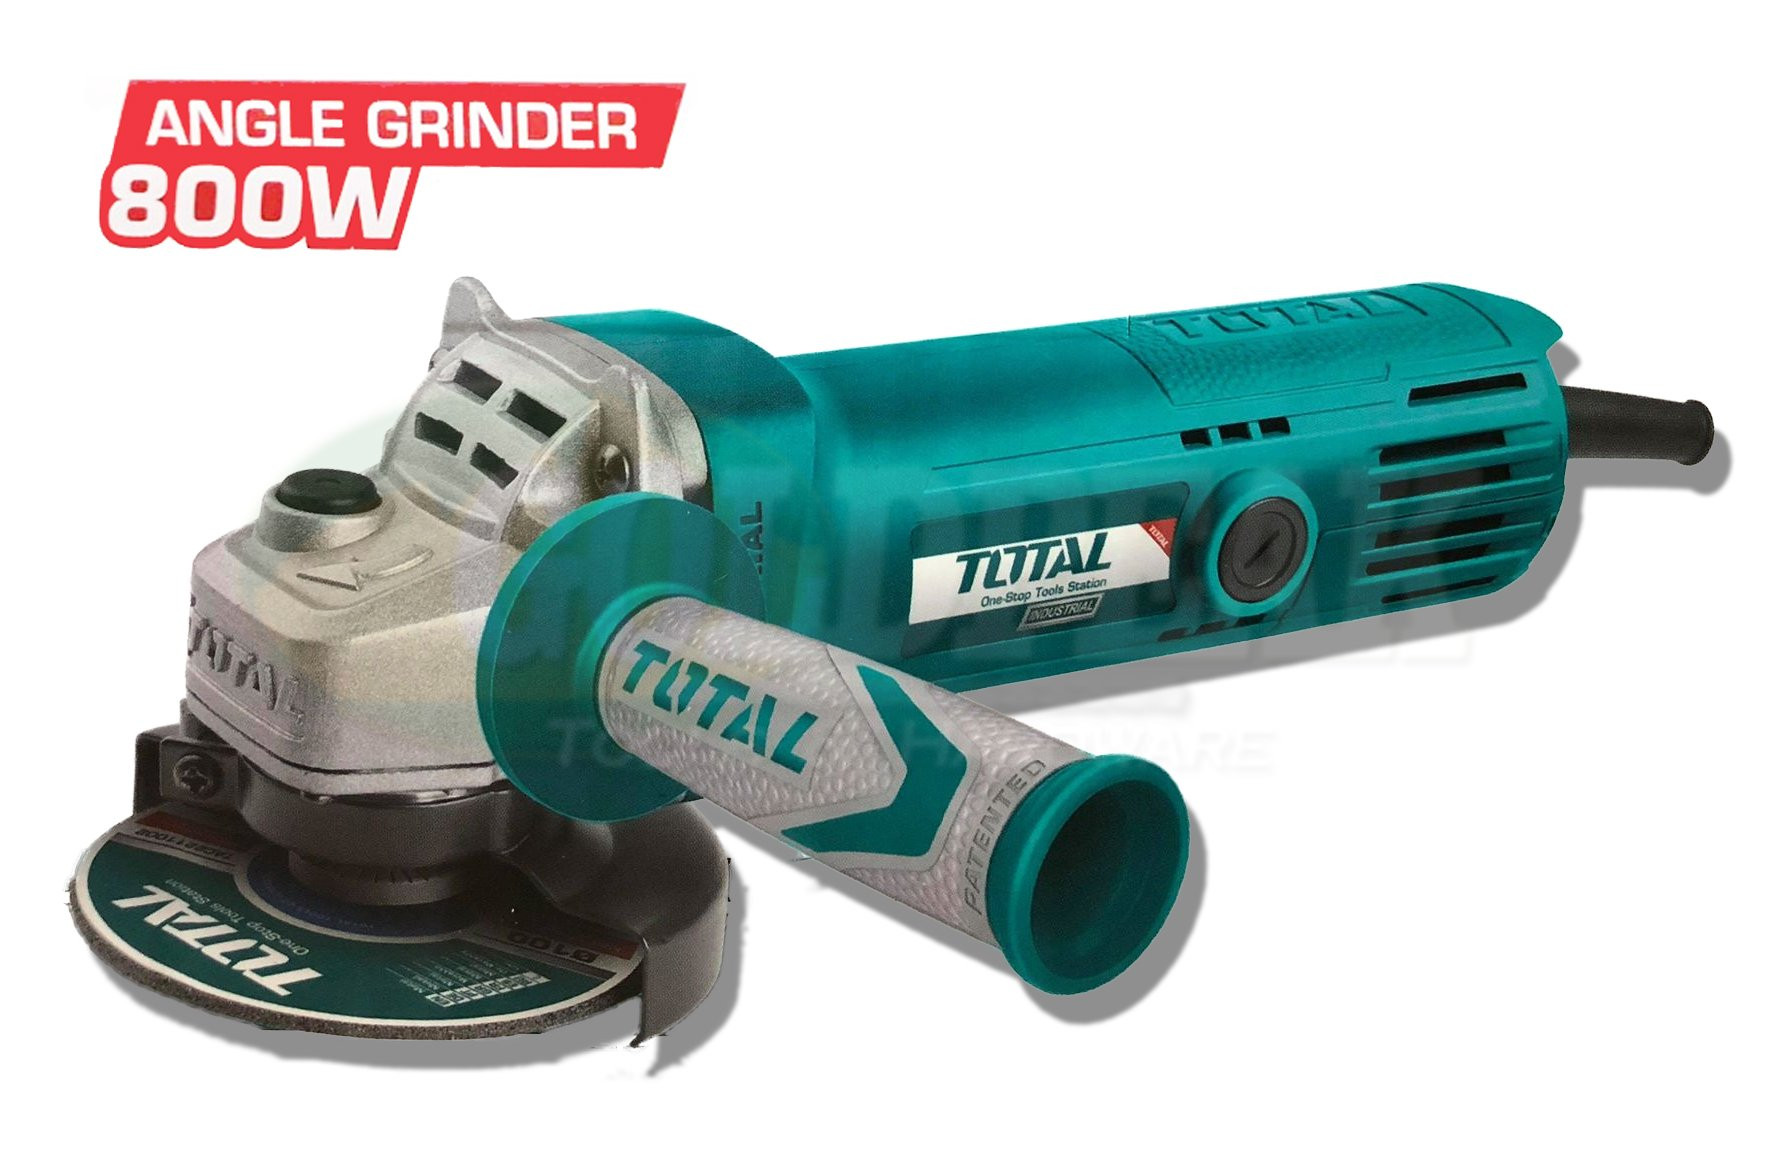 Total 800W Angle grinder with Soft Hand Grip TG1081006